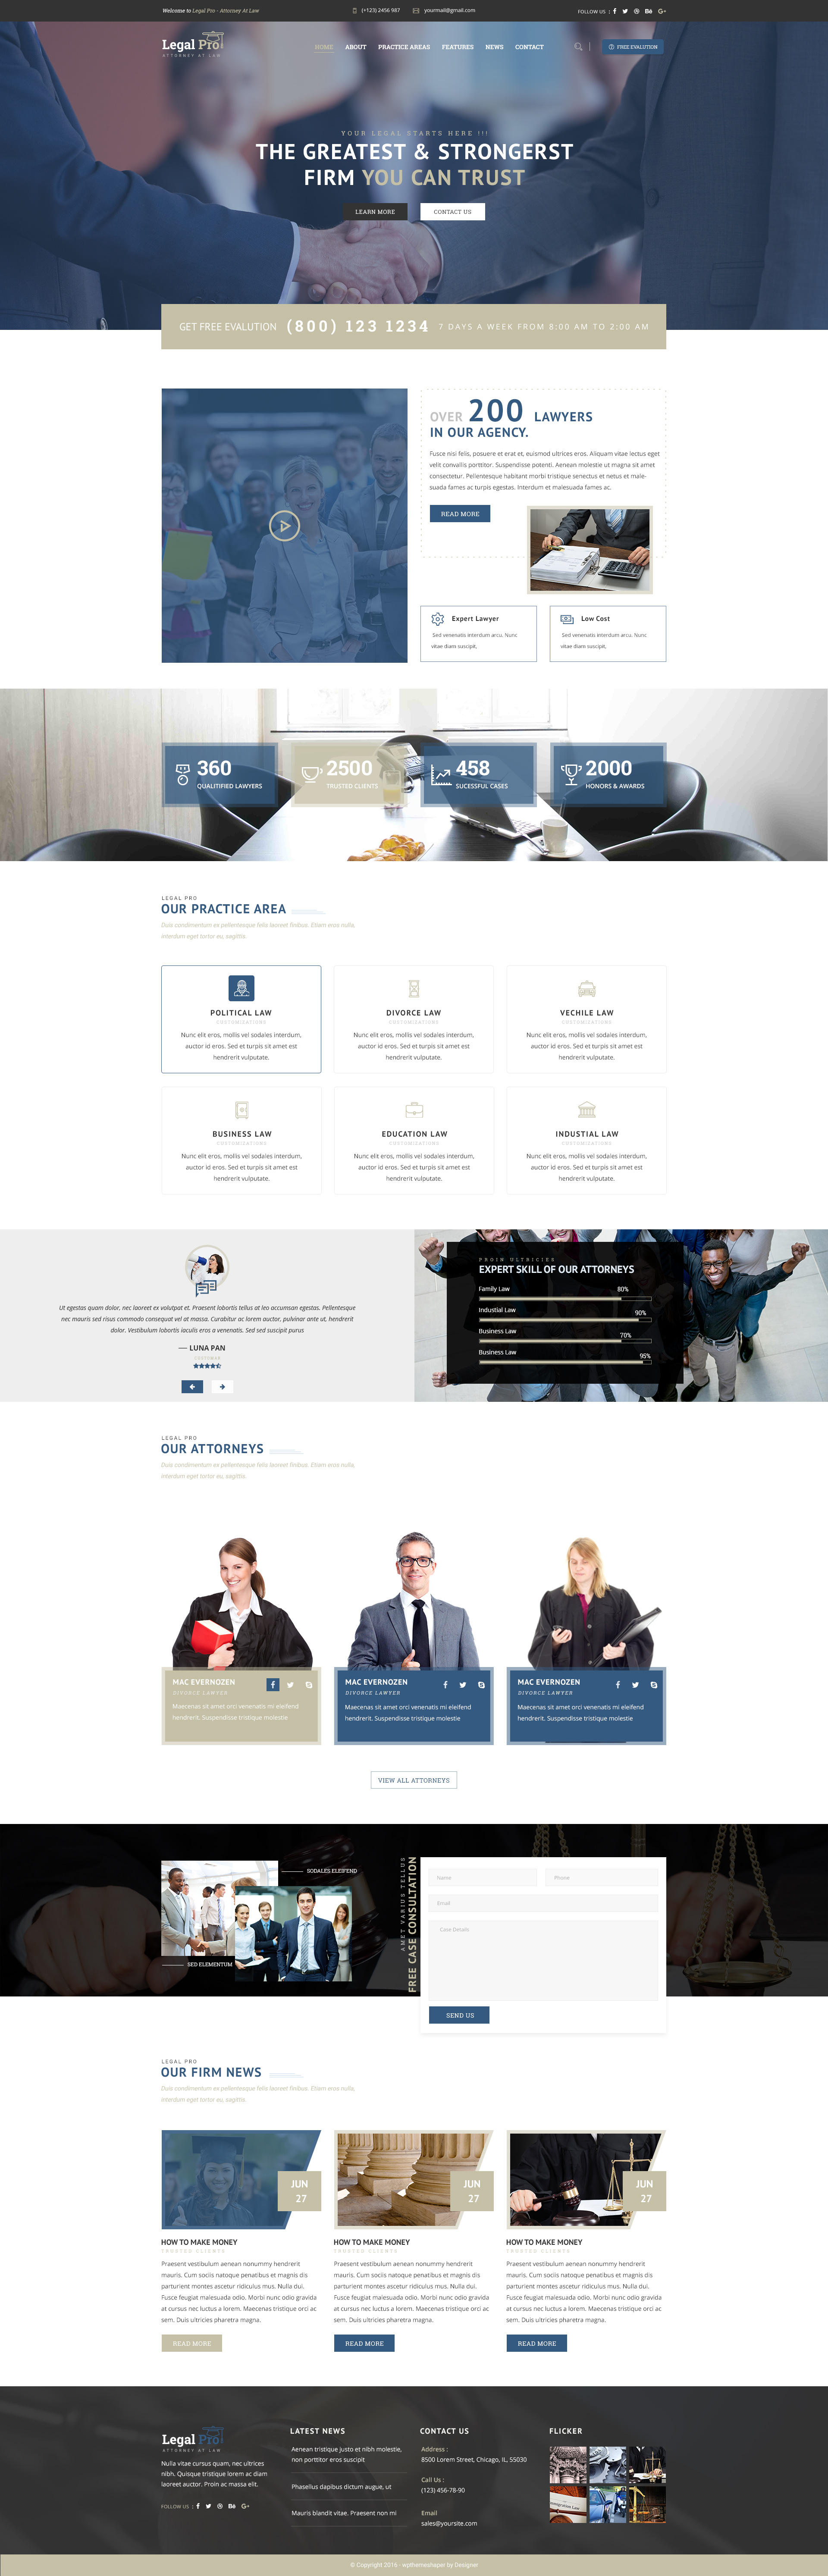 Legalpro psd template for law firm lawyer and attorney by legalpro psd template for law firm lawyer and attorney pronofoot35fo Choice Image